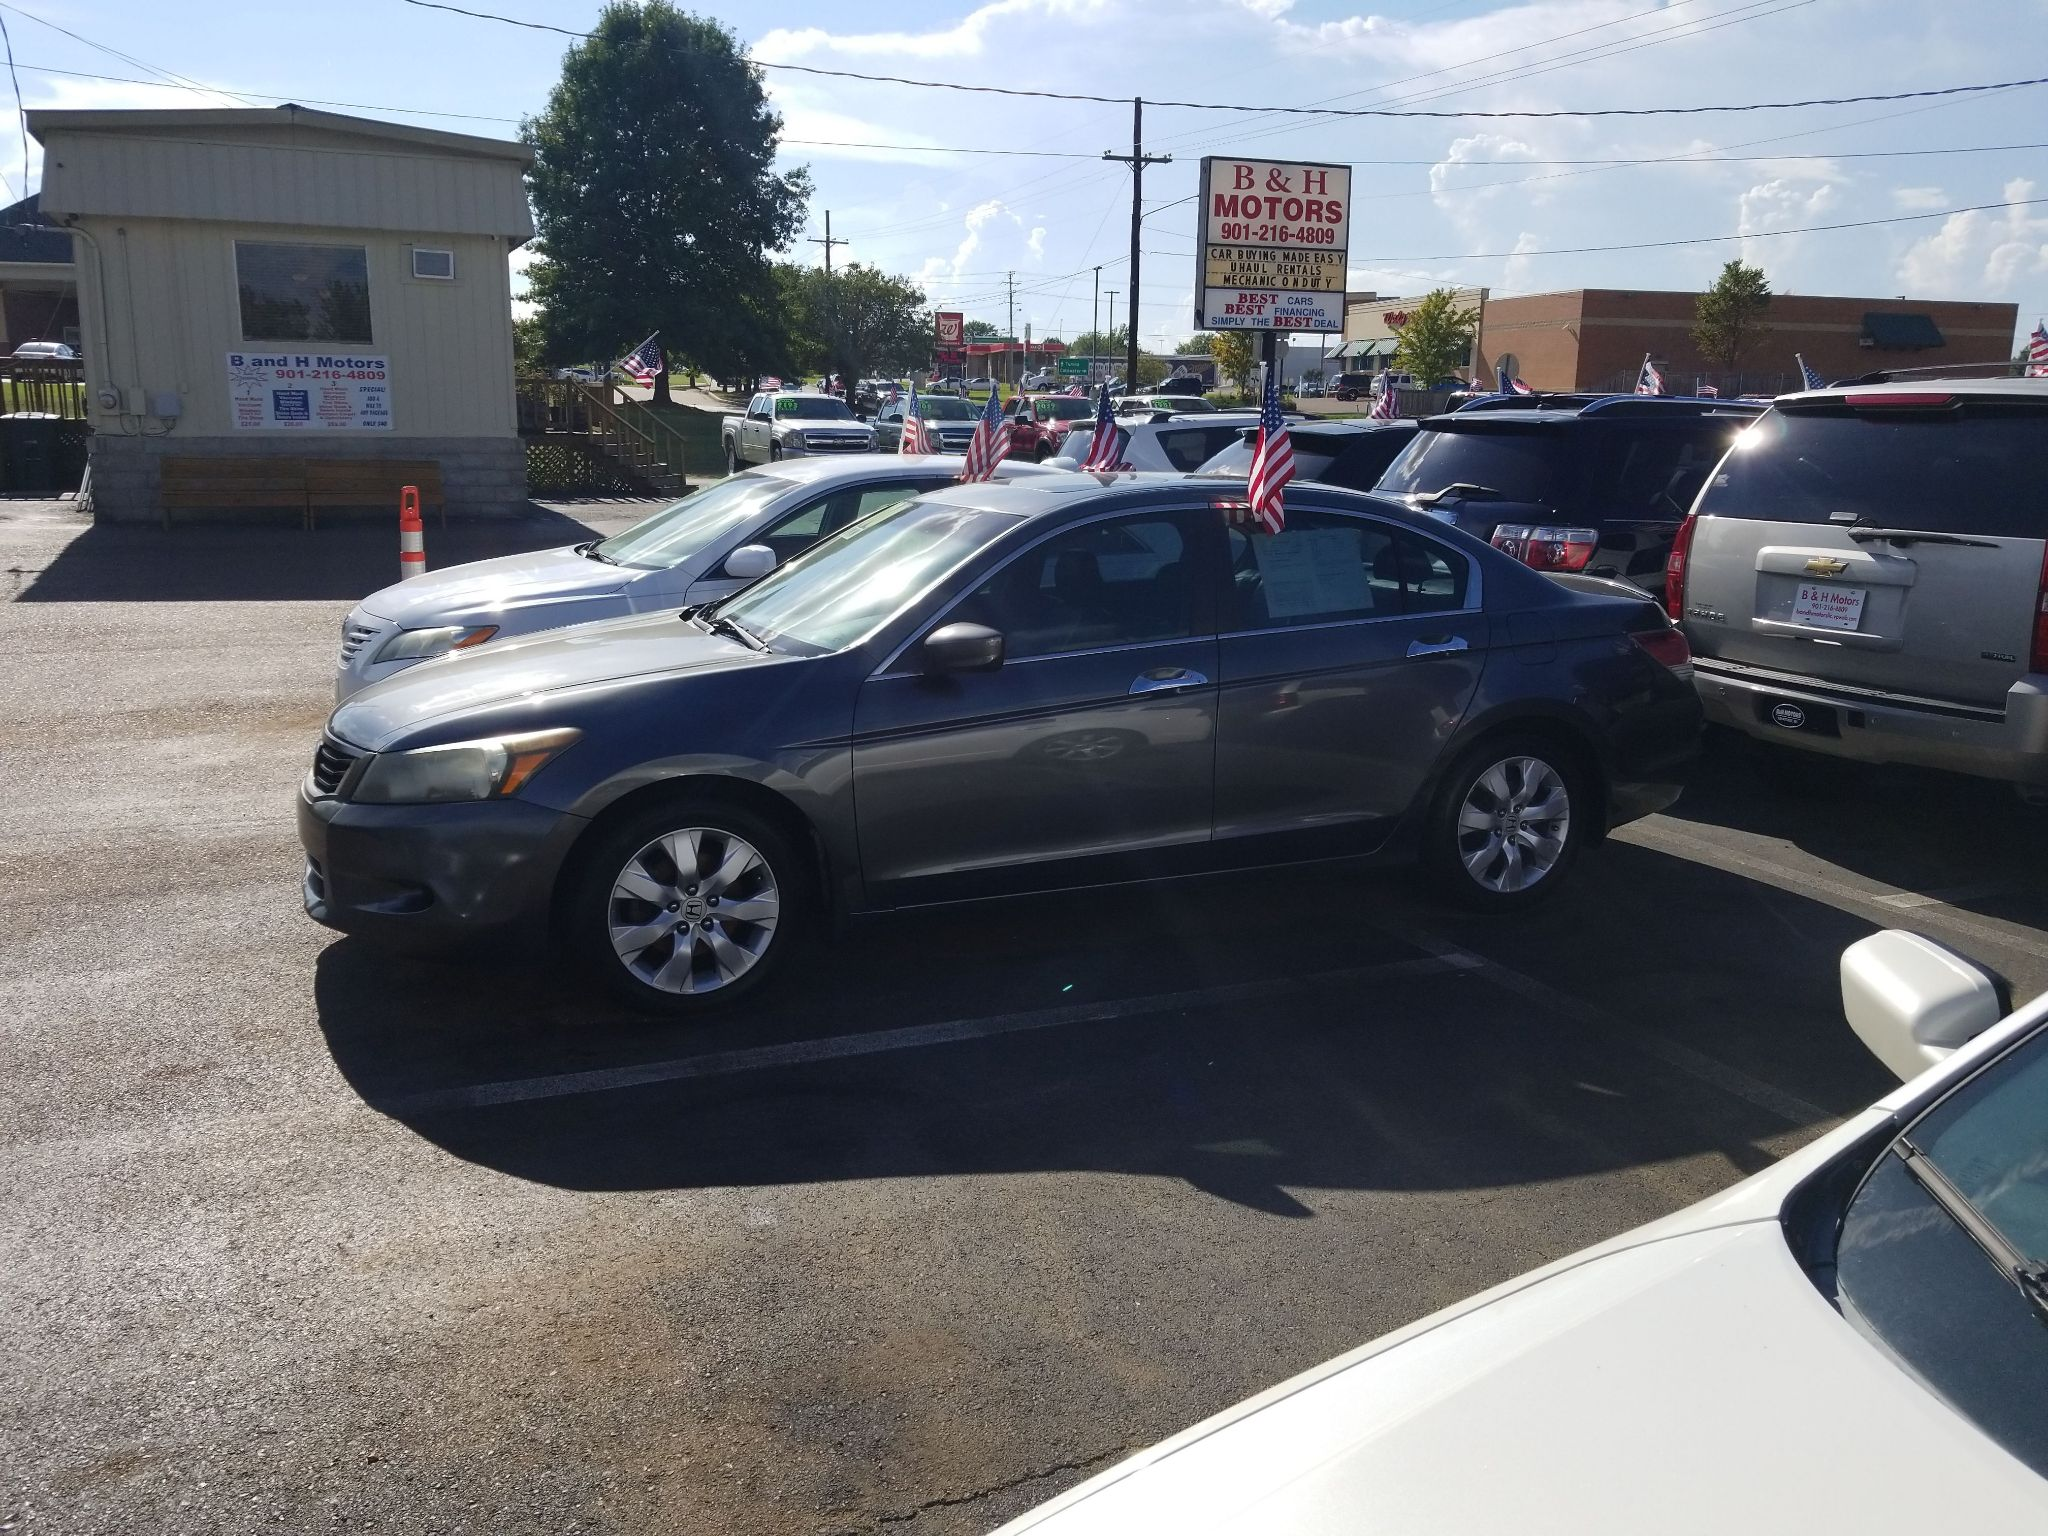 2009 HONDA ACCORD 1HGCP36899A002331 B & H MOTORS, LLC